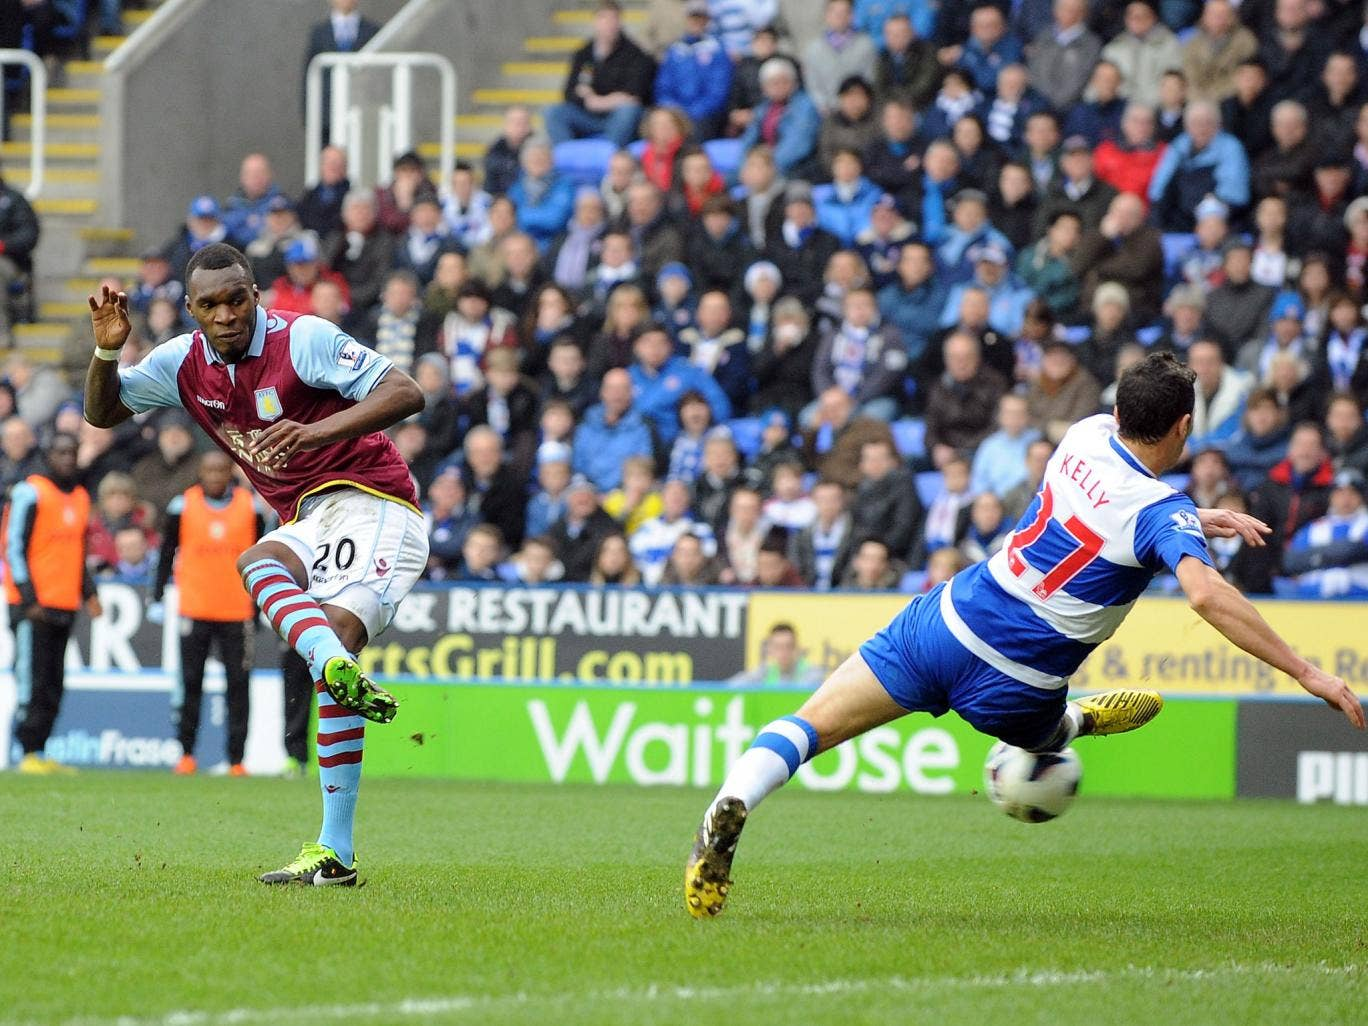 Christian Benteke of Aston Villa shoots past Stephen Kelly of Reading to score their first goal